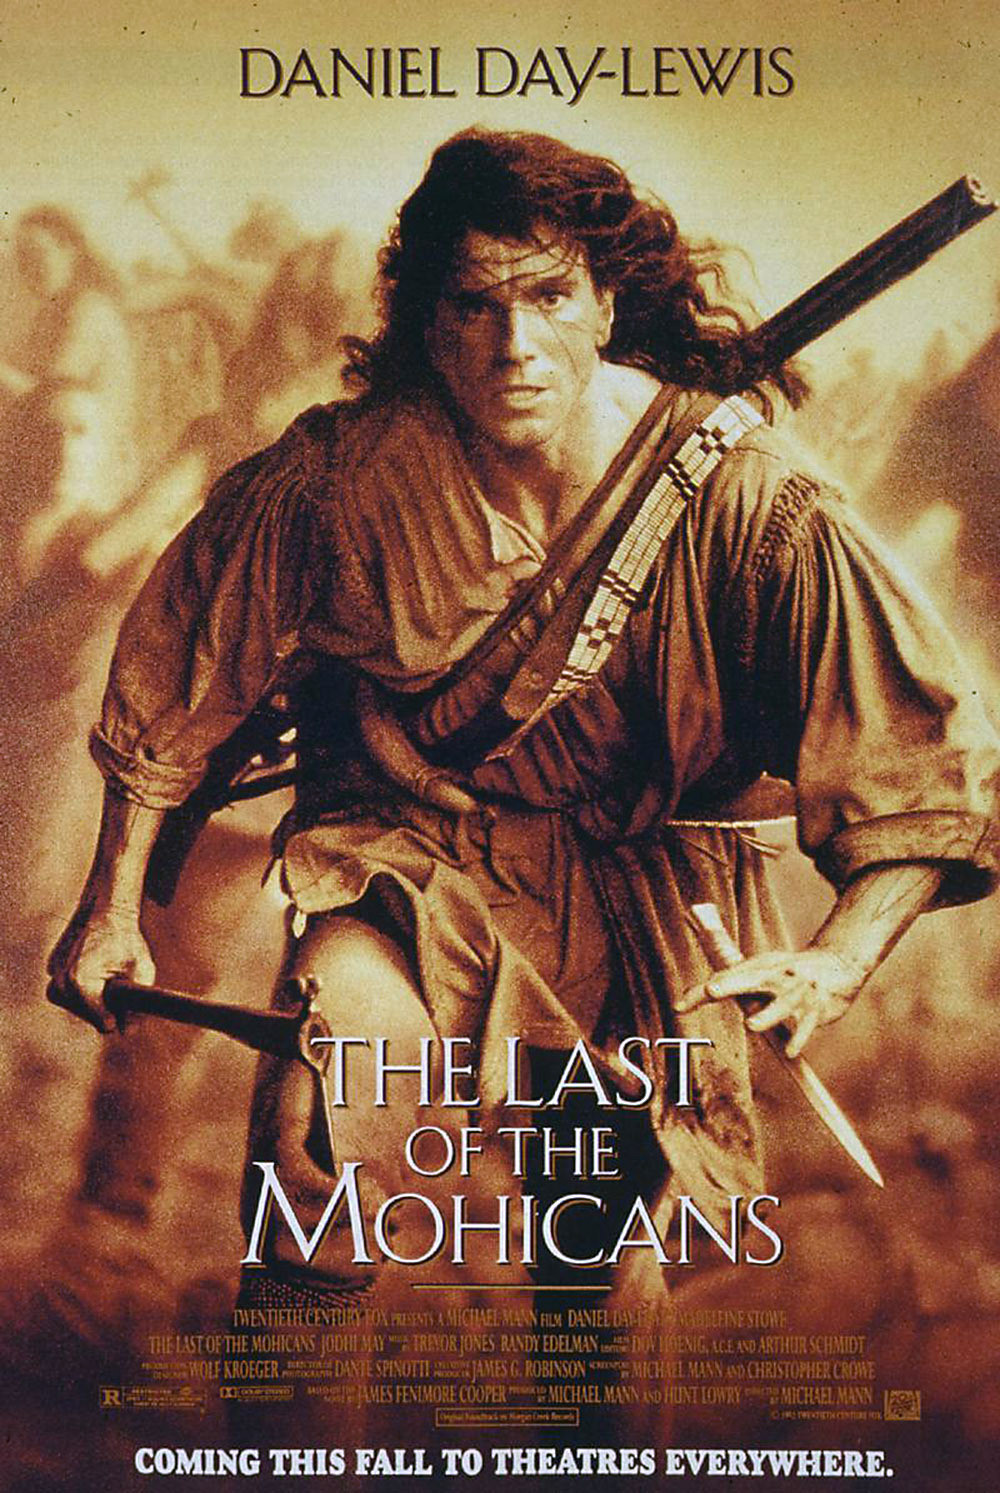 last of the mohicans Ranking + Dissected: Michael Mann